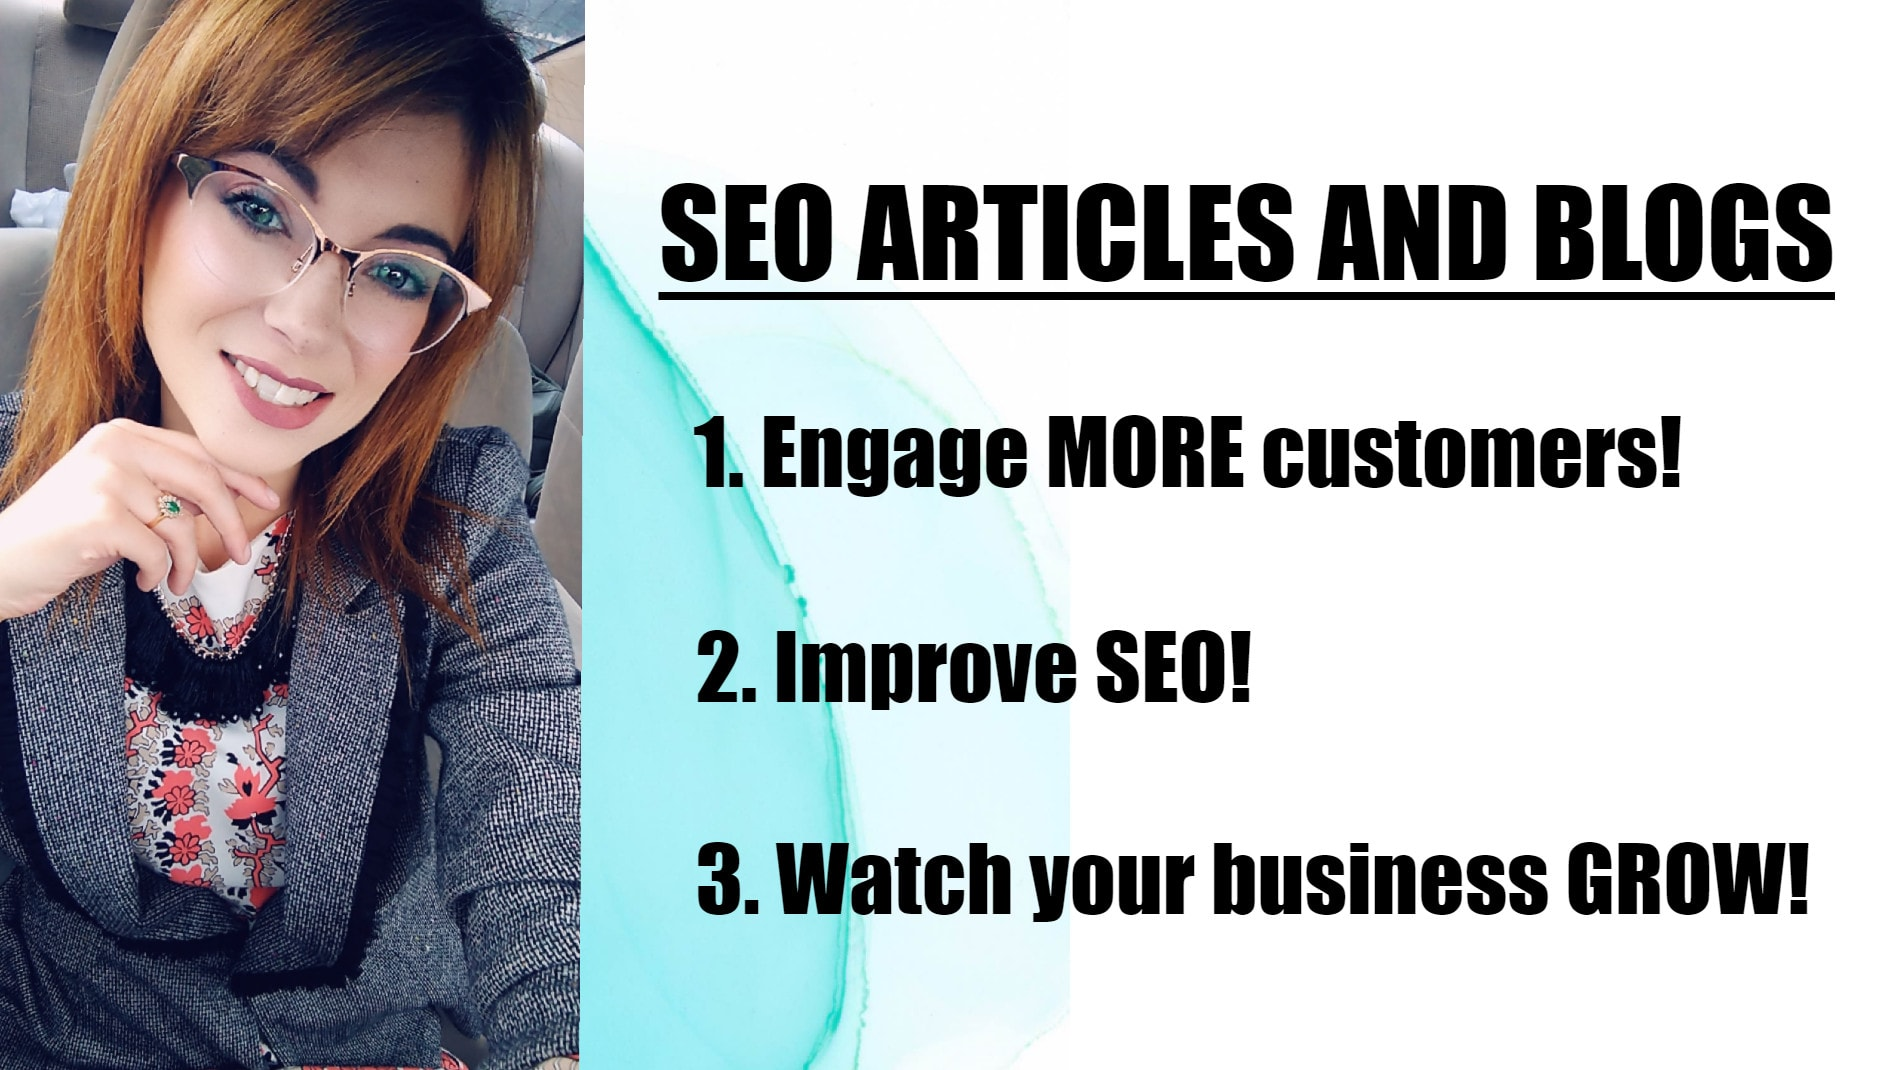 I will write engaging SEO articles and blog posts